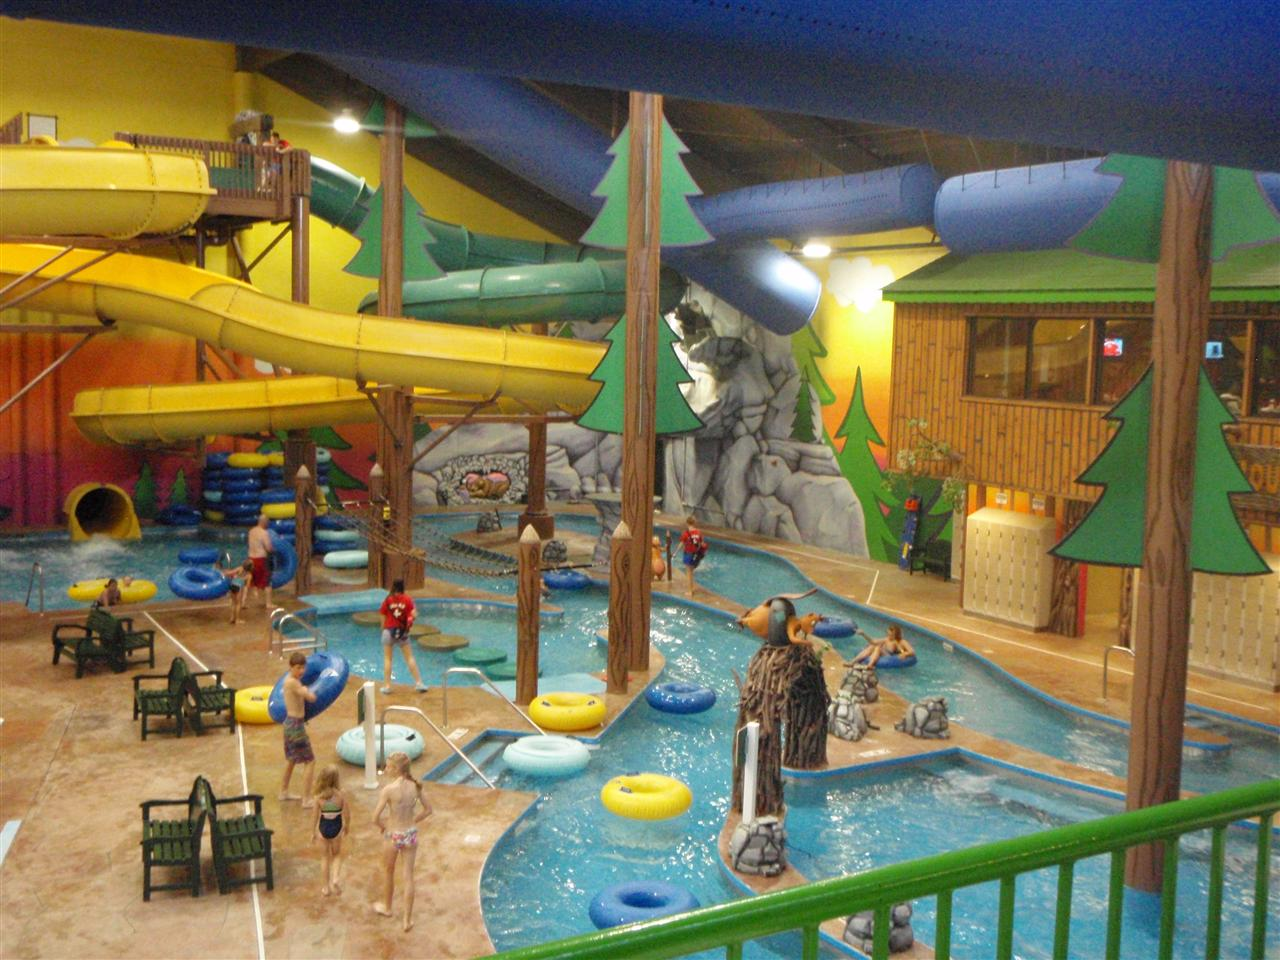 Escape with your Family to Splash Universe Indoor Water Park Resorts in Dundee, MI with over , gallons water park fun! From twisting water park slides and gallon splash bucket, to the relaxing lazy river it's always a summery 84 degrees/5(55).